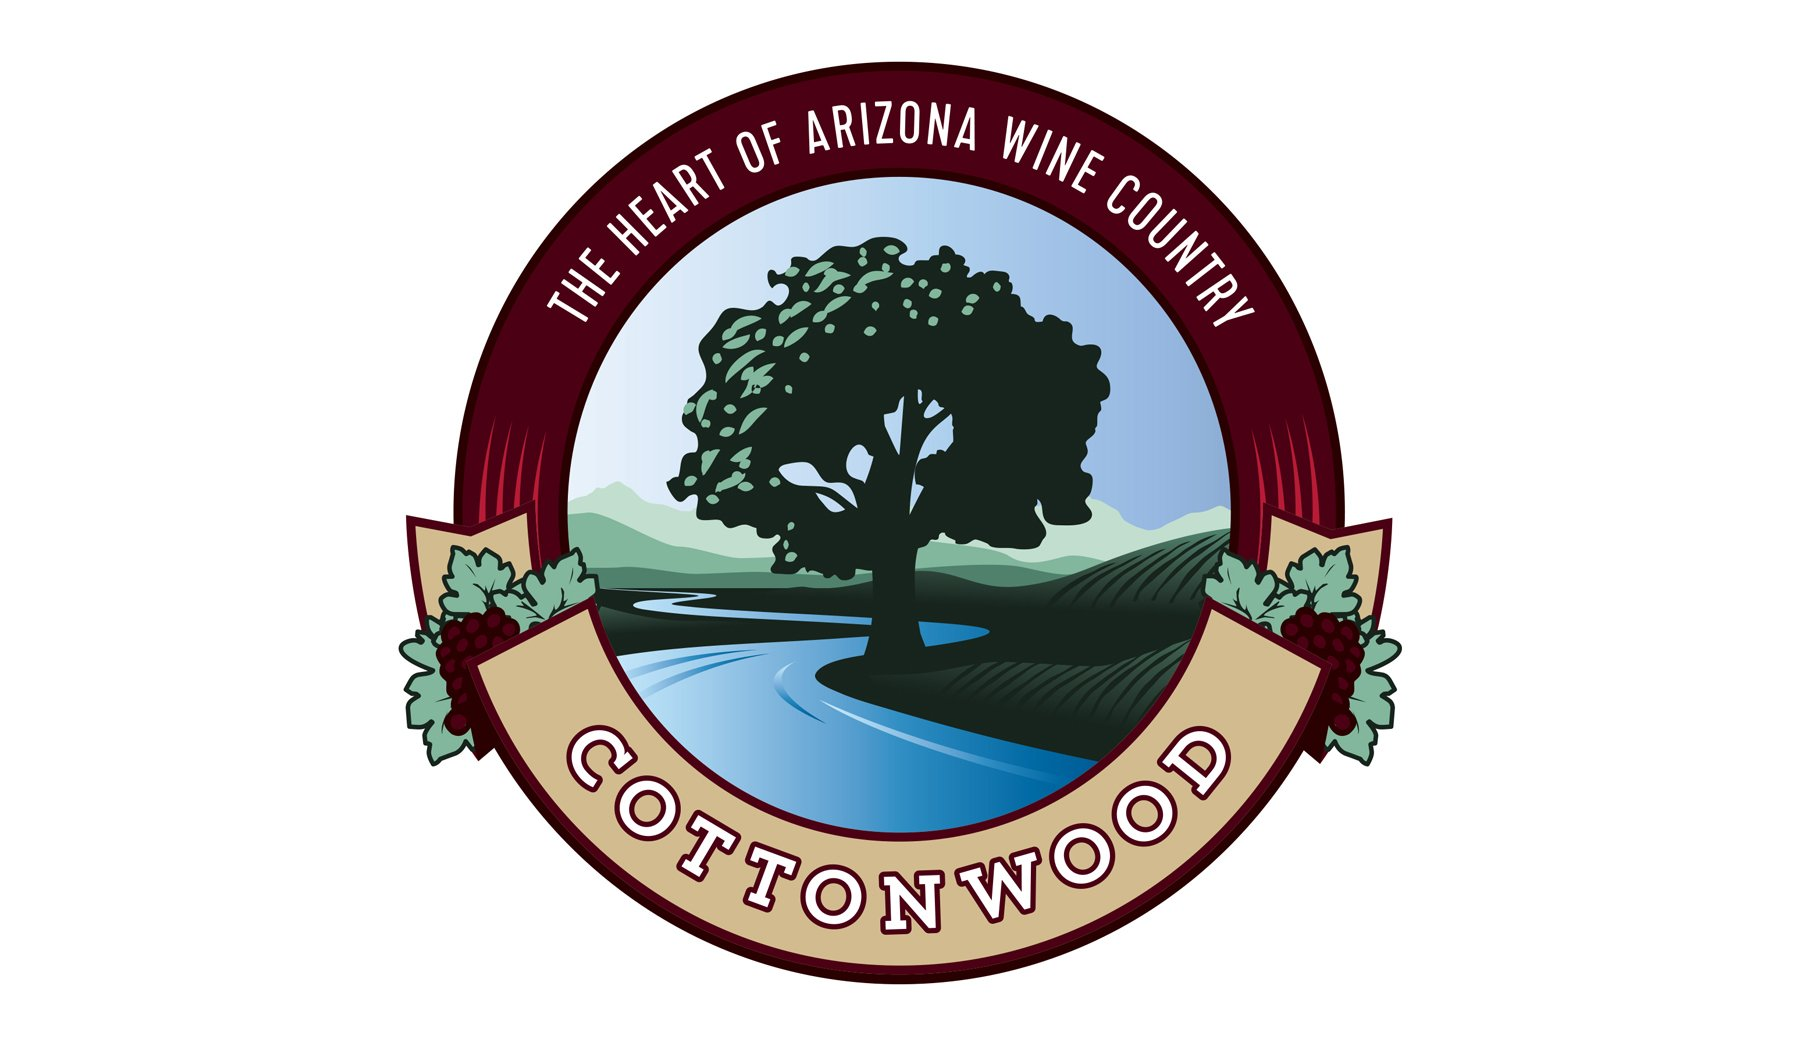 City of Cottonwood, Arizona